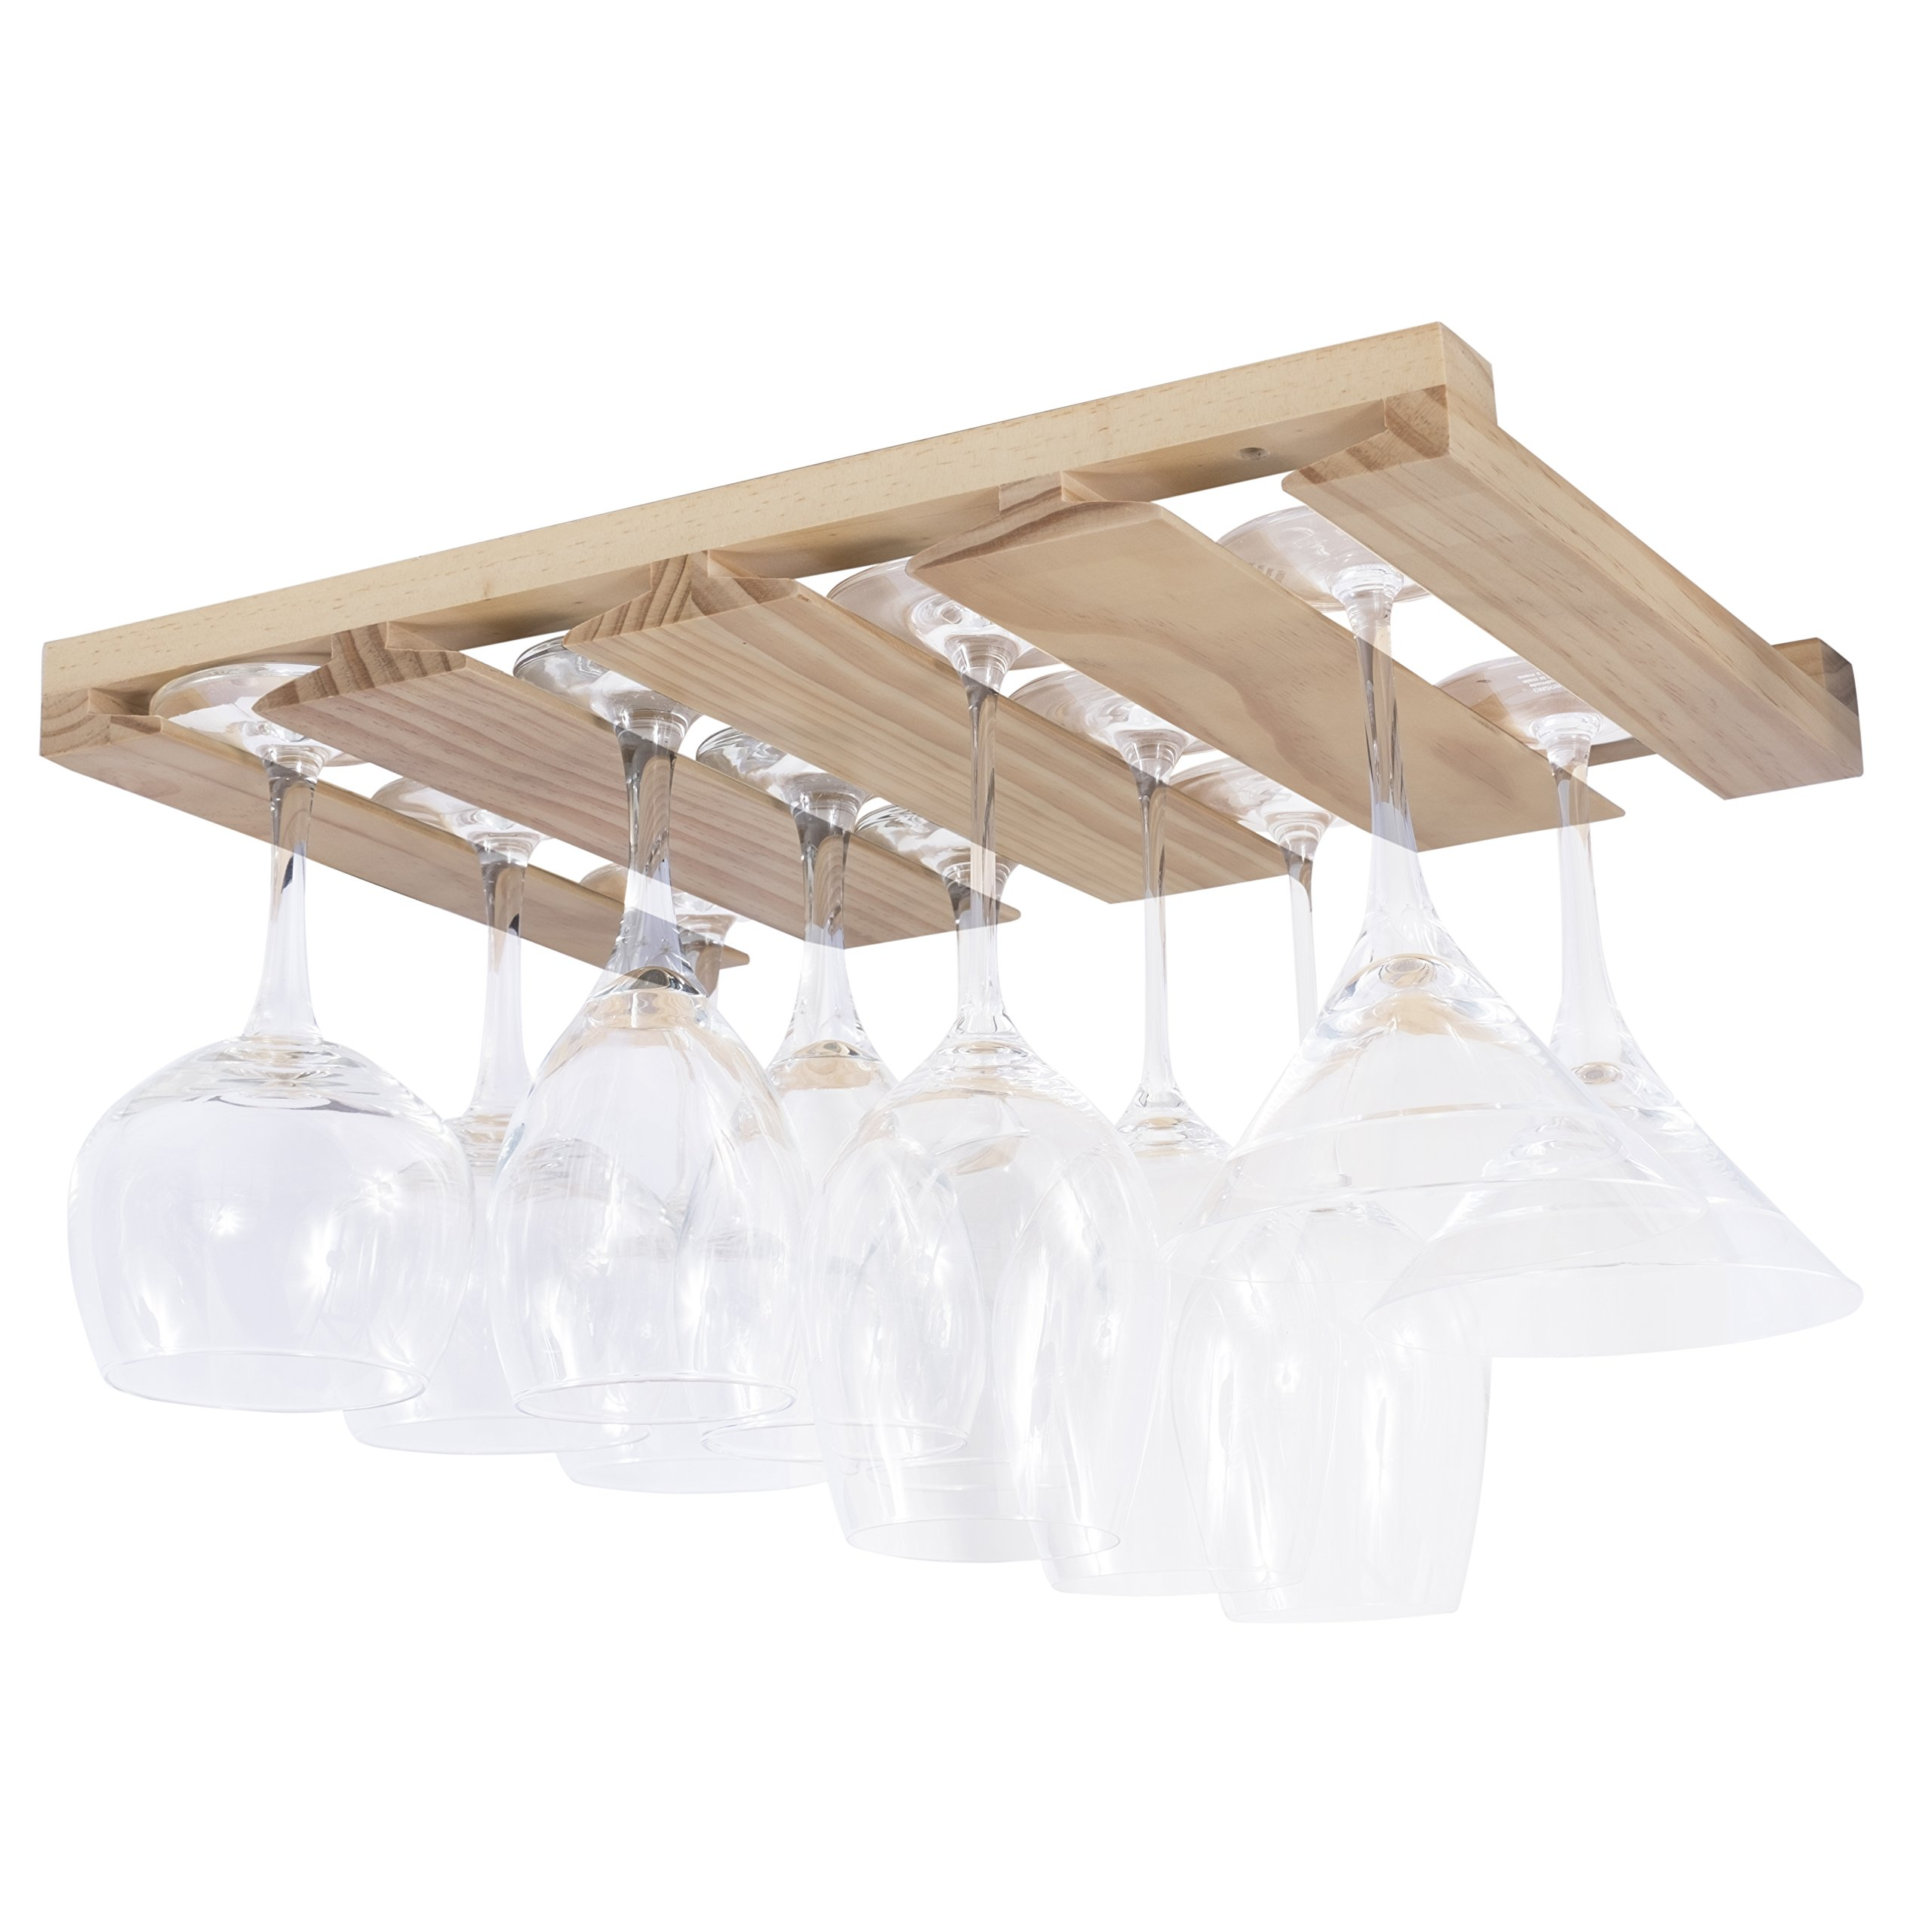 Rustic State 4 Sectional Under Cabinet Wood Stemware Rack 12 Inch Deep (Natural)